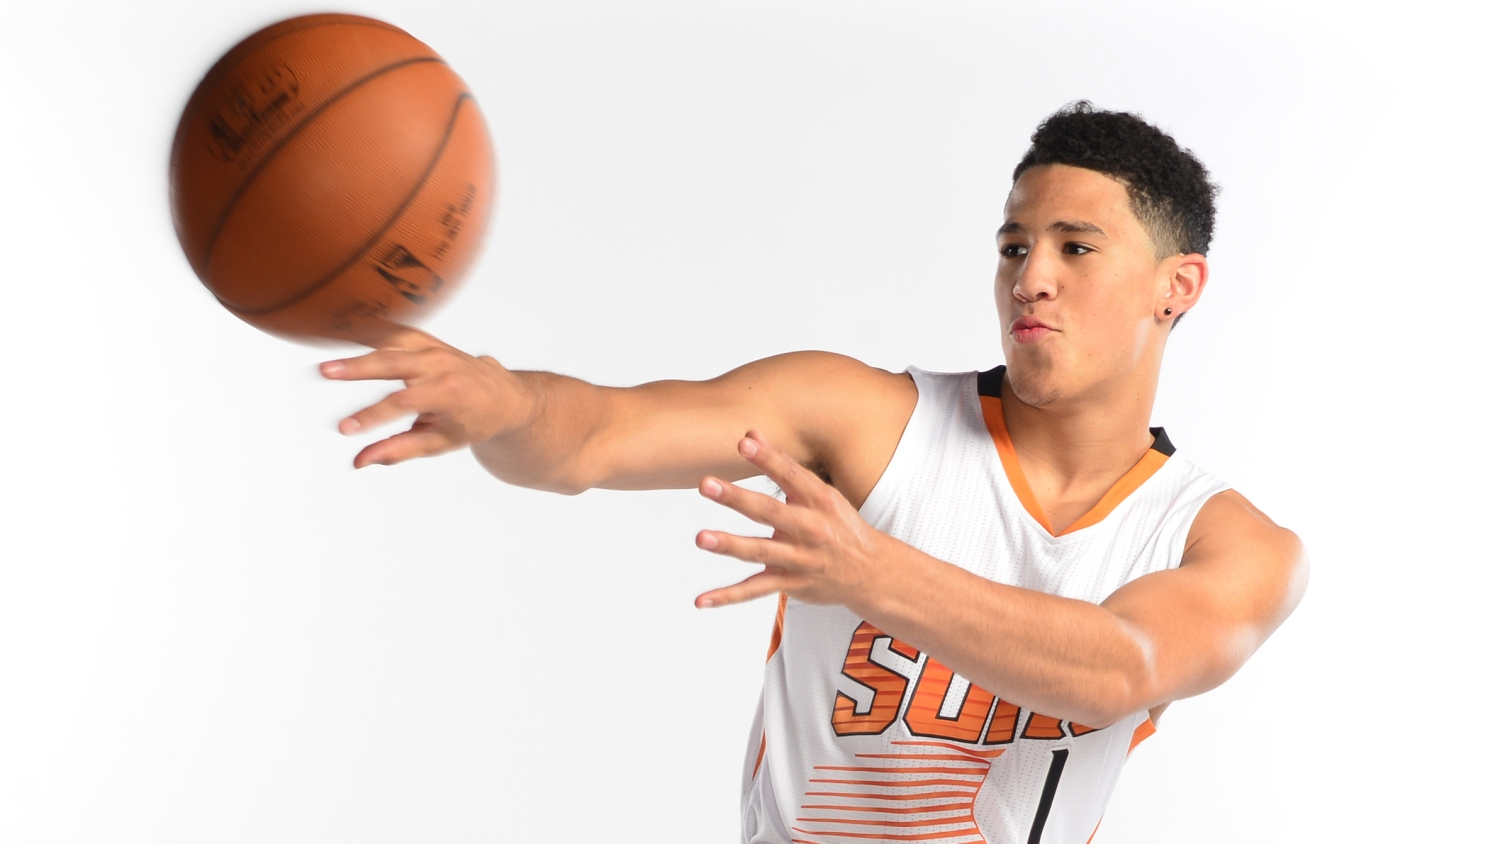 Stuntin' like his daddy: How Devin Booker's father paved his